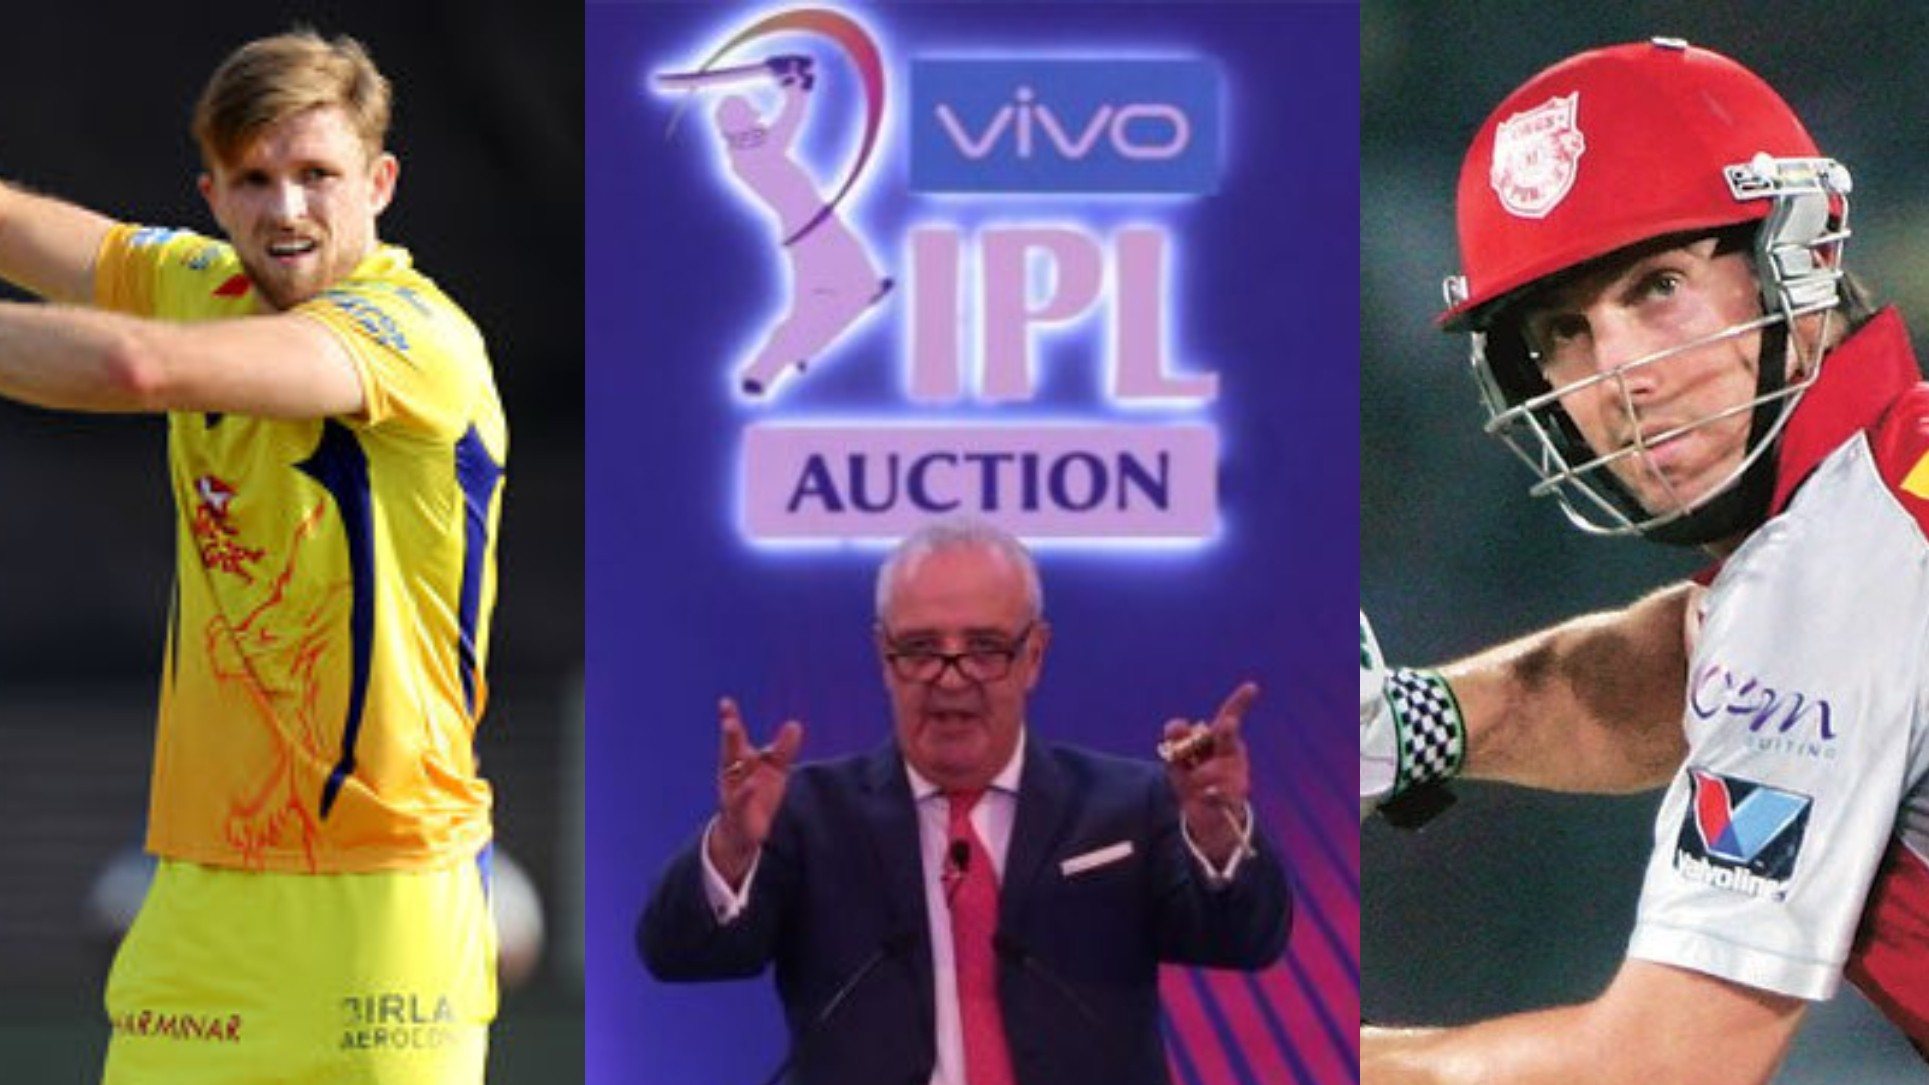 IPL 2020: 5 foreign players who might go unsold in auction due to high base price